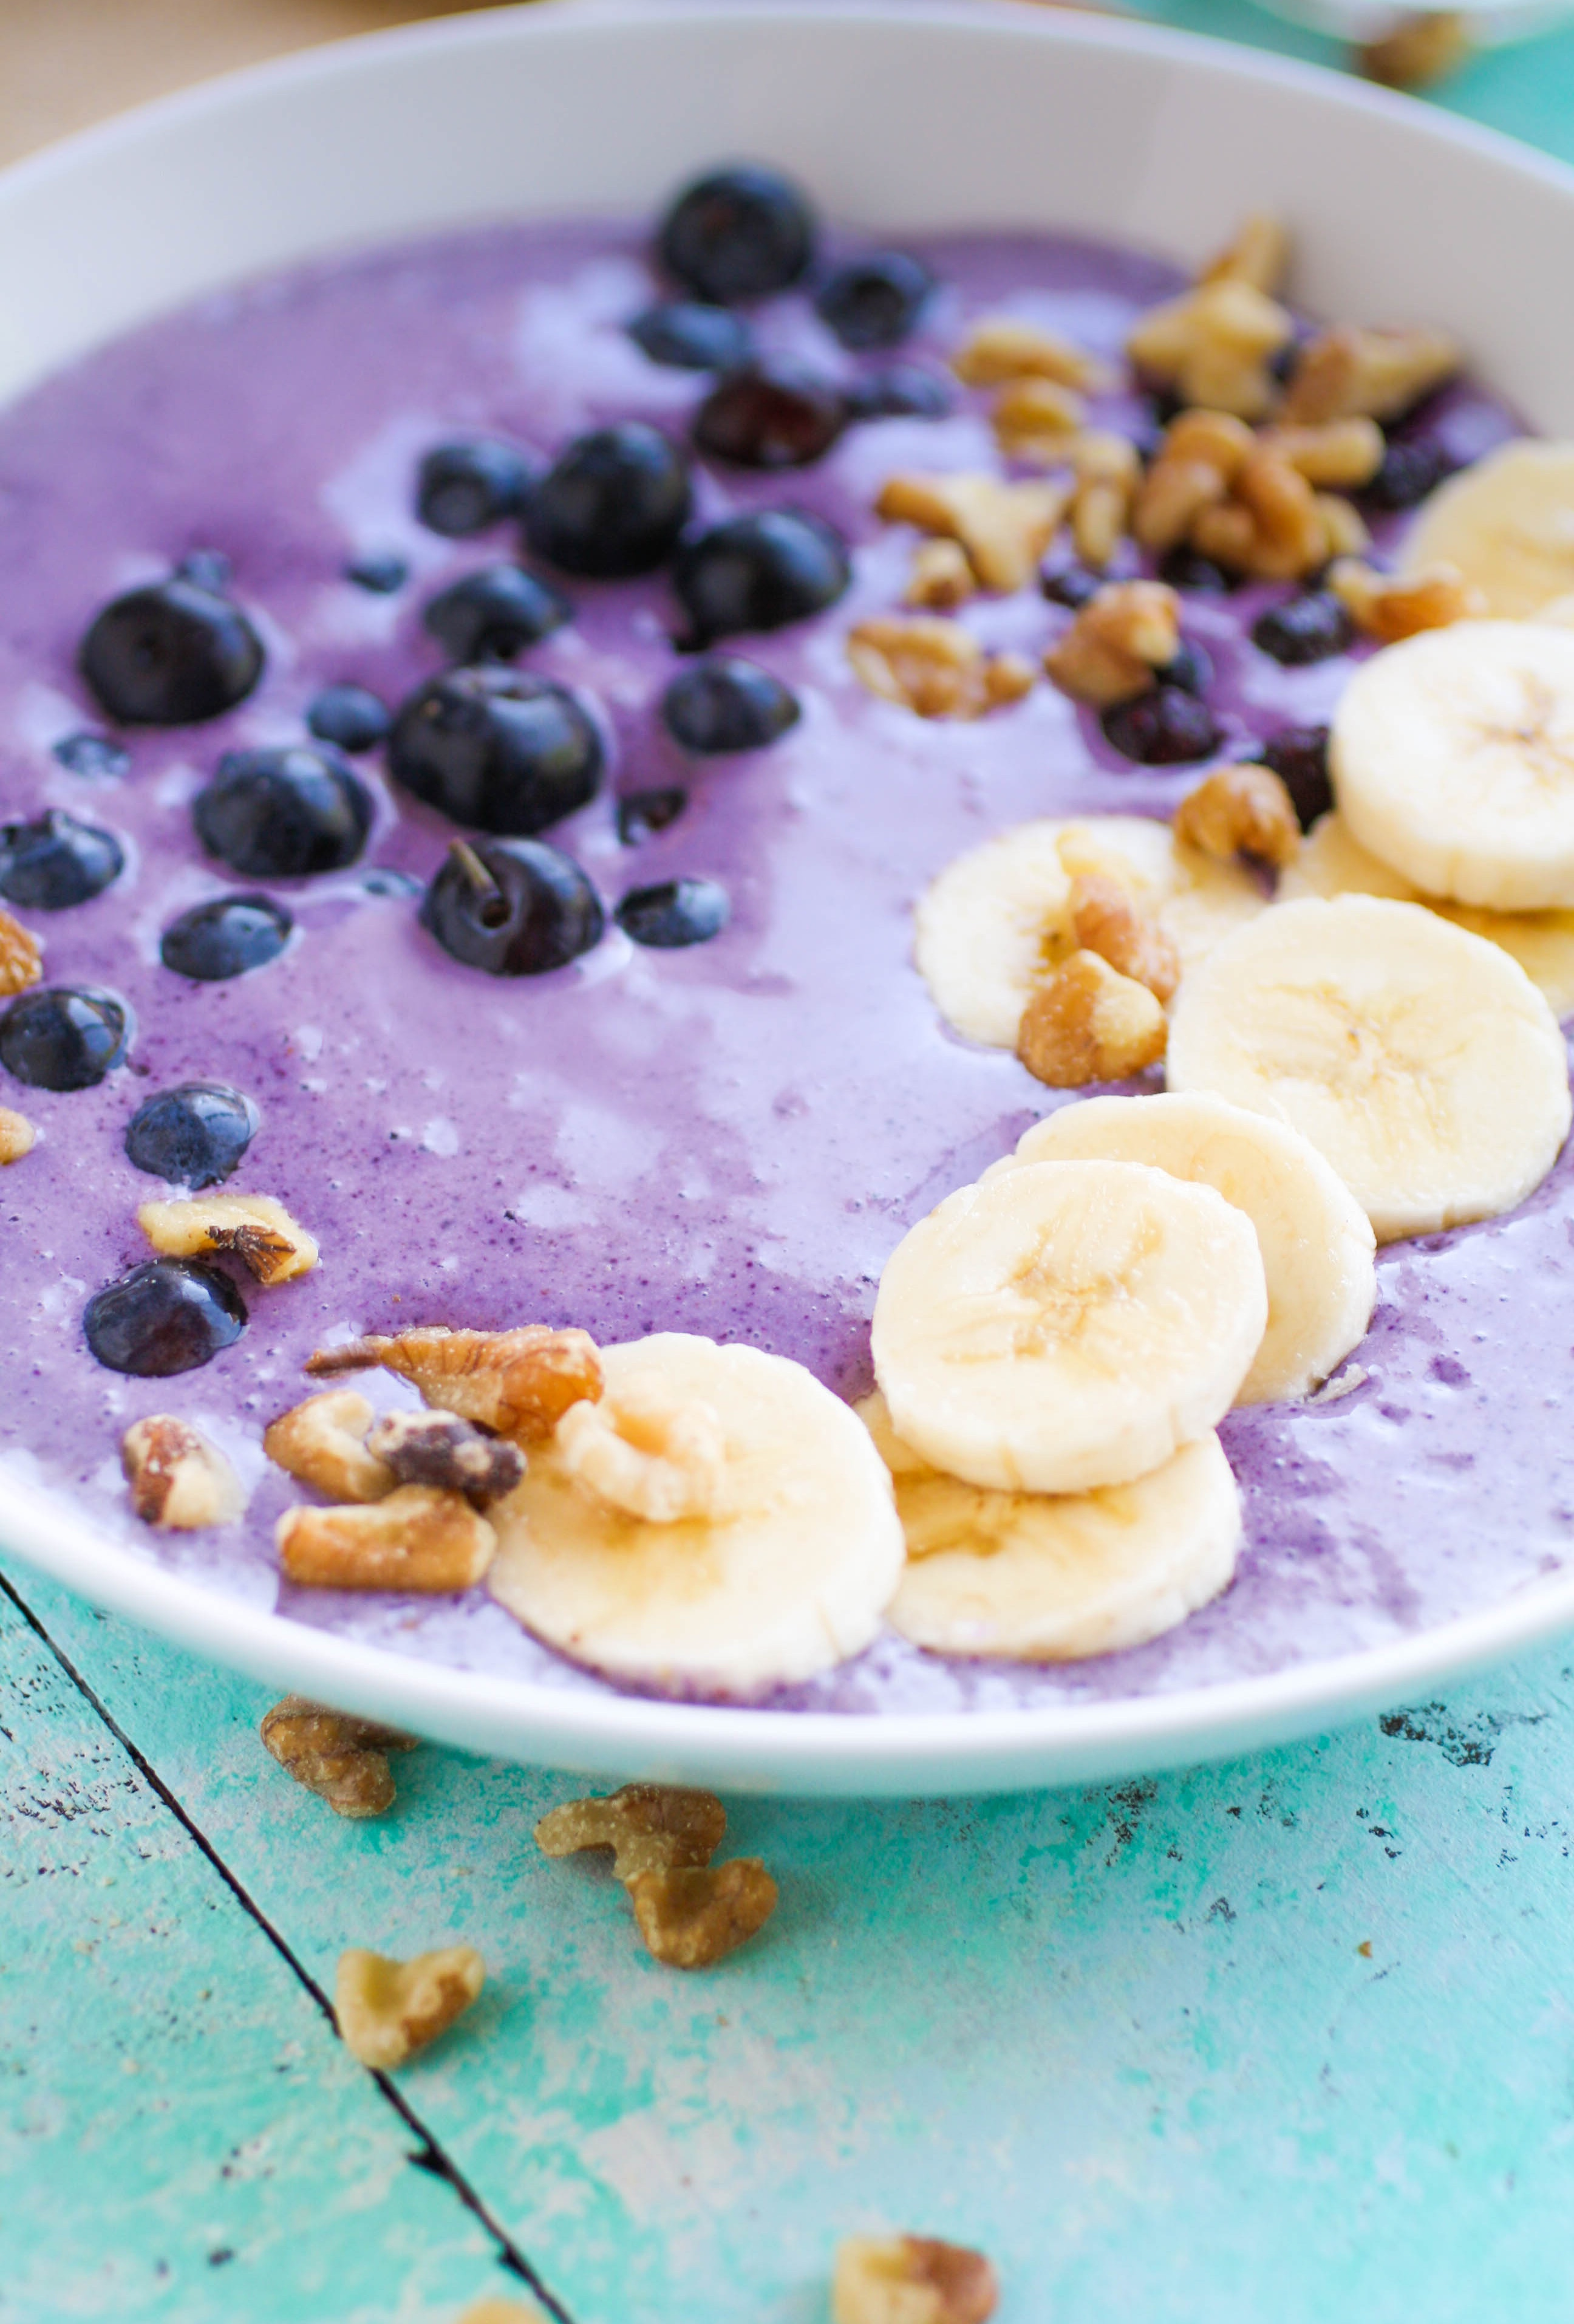 Blueberry Banana Walnut Smoothie Bowls are wonderful for a delicious breakfast. Blueberry Banana Walnut Smoothie Bowls are a delight in the morning.